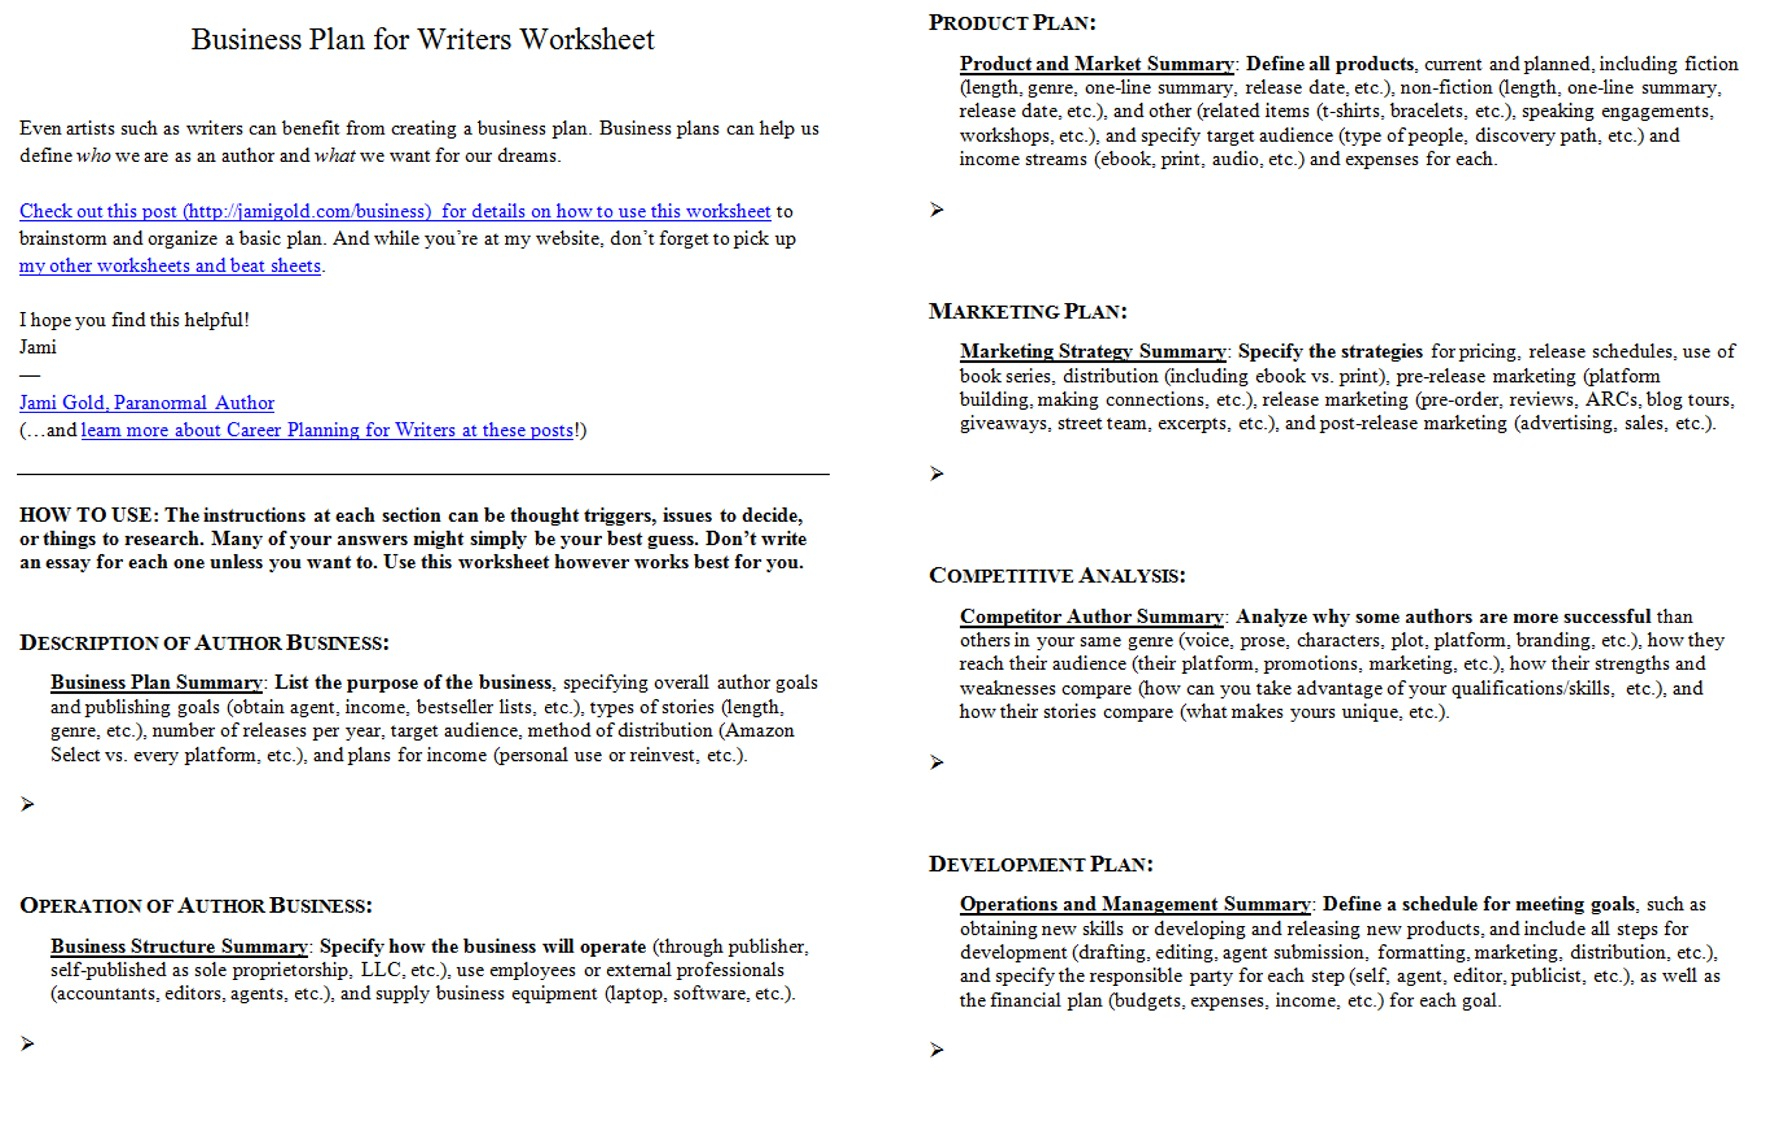 Weirdmailus  Gorgeous Worksheets For Writers  Jami Gold Paranormal Author With Goodlooking Screen Shot Of Both Pages Of The Business Plan For Writers Worksheet With Amazing Trig Identity Worksheet Also Fun Grammar Worksheets In Addition Language Handbook Worksheets Answer Key Online And Super Teacher Worksheet Reading Comprehension As Well As Pan Balance Worksheets Additionally Easy Long Division Worksheets From Jamigoldcom With Weirdmailus  Goodlooking Worksheets For Writers  Jami Gold Paranormal Author With Amazing Screen Shot Of Both Pages Of The Business Plan For Writers Worksheet And Gorgeous Trig Identity Worksheet Also Fun Grammar Worksheets In Addition Language Handbook Worksheets Answer Key Online From Jamigoldcom